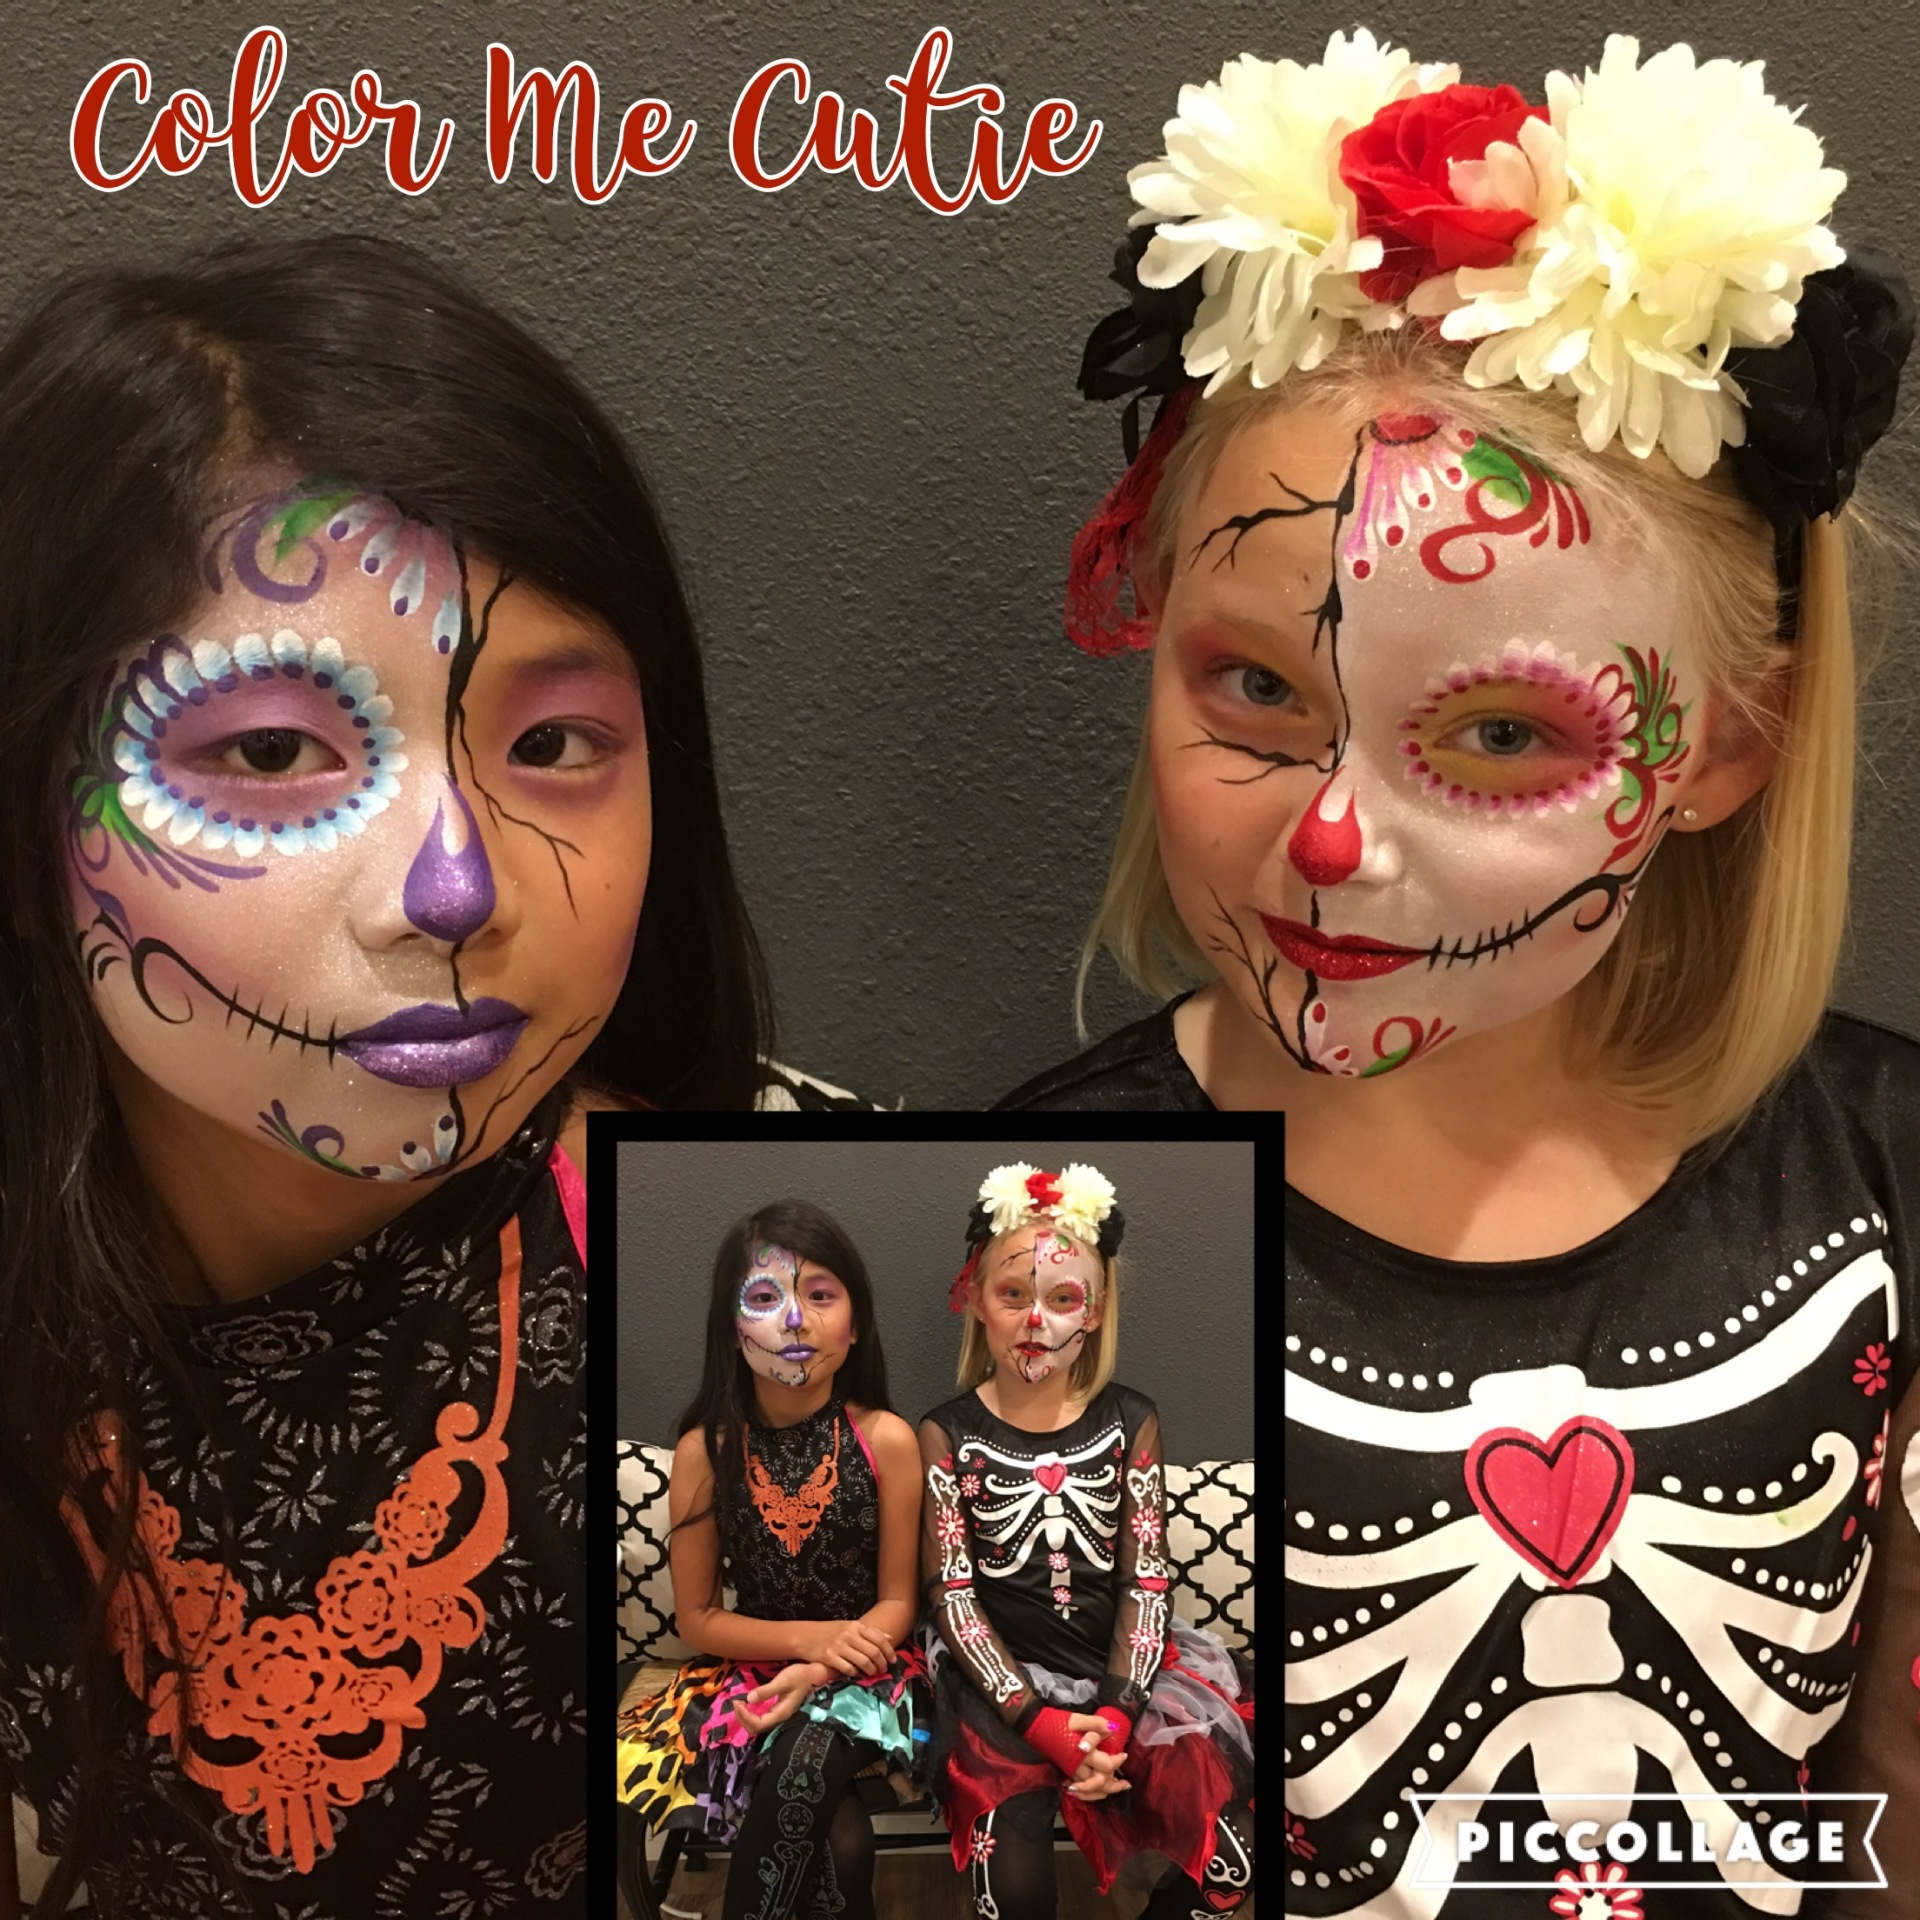 Yuba City face painter, Yuba. Sutter, Colusa, Butte, California, Northern California, San Francisco, Petaluma, Rohnert Park, Sacramento, Dia De Los Muertos, Sugar skull face painting, sugar skull make up, MUA, Halloween, SPecial FX, Costume idea, Flowers, photo shoot, professional photography